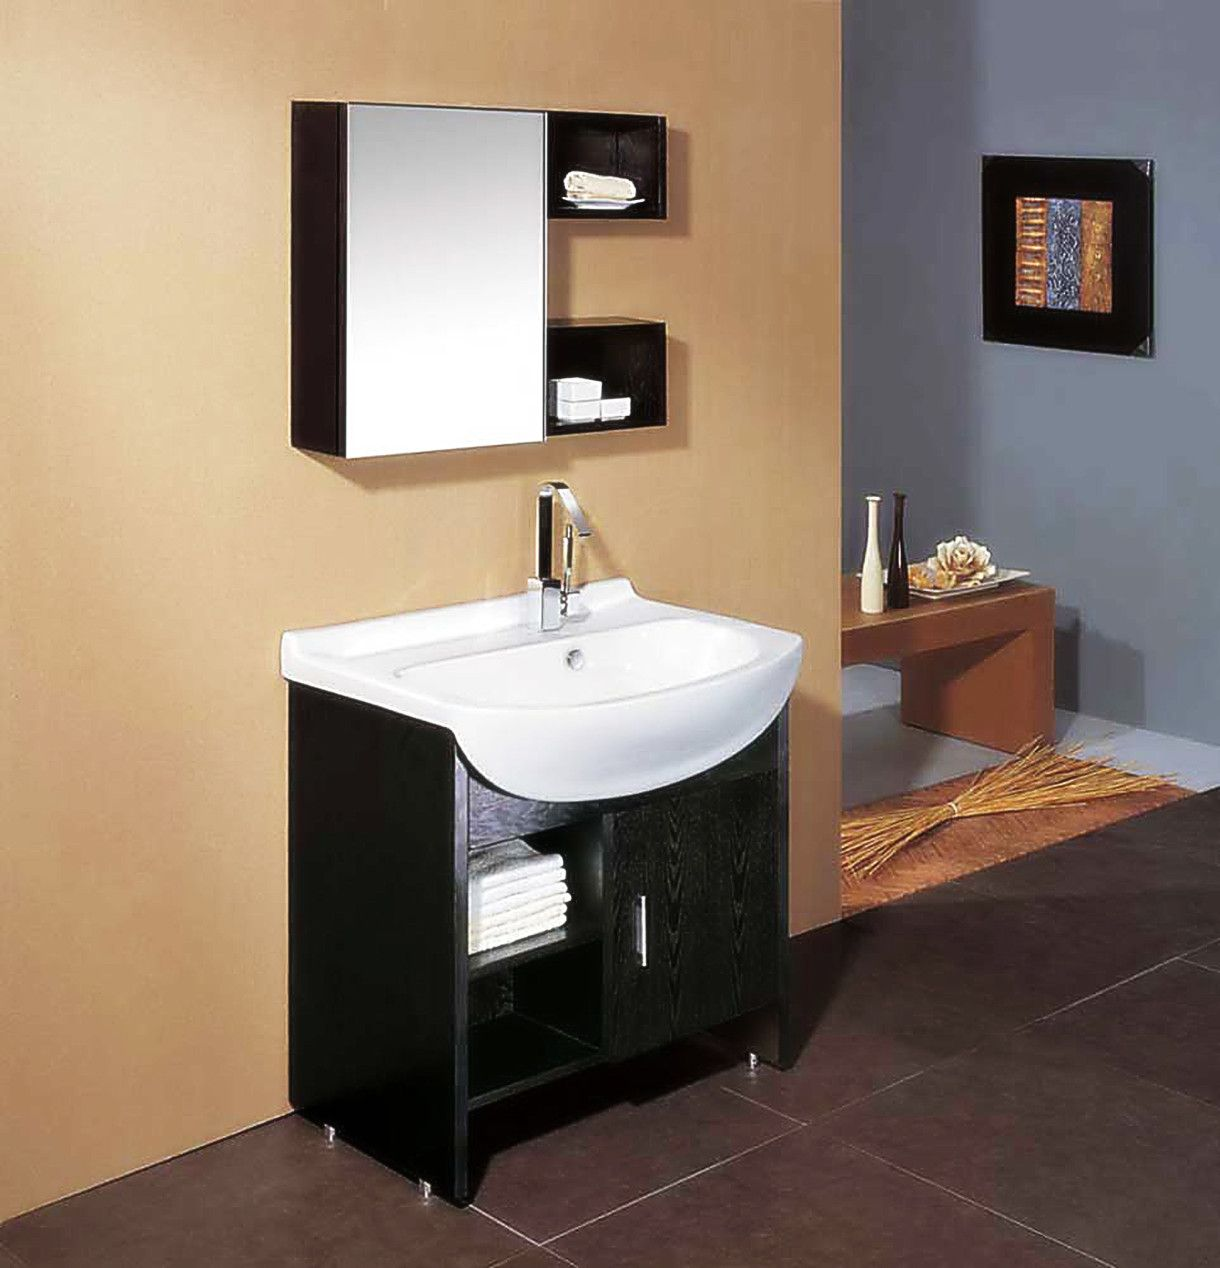 Likeness Of Ikea Bath Cabinet Invades Every Bathroom With Dignity - Ikea bathroom vanity set for bathroom decor ideas